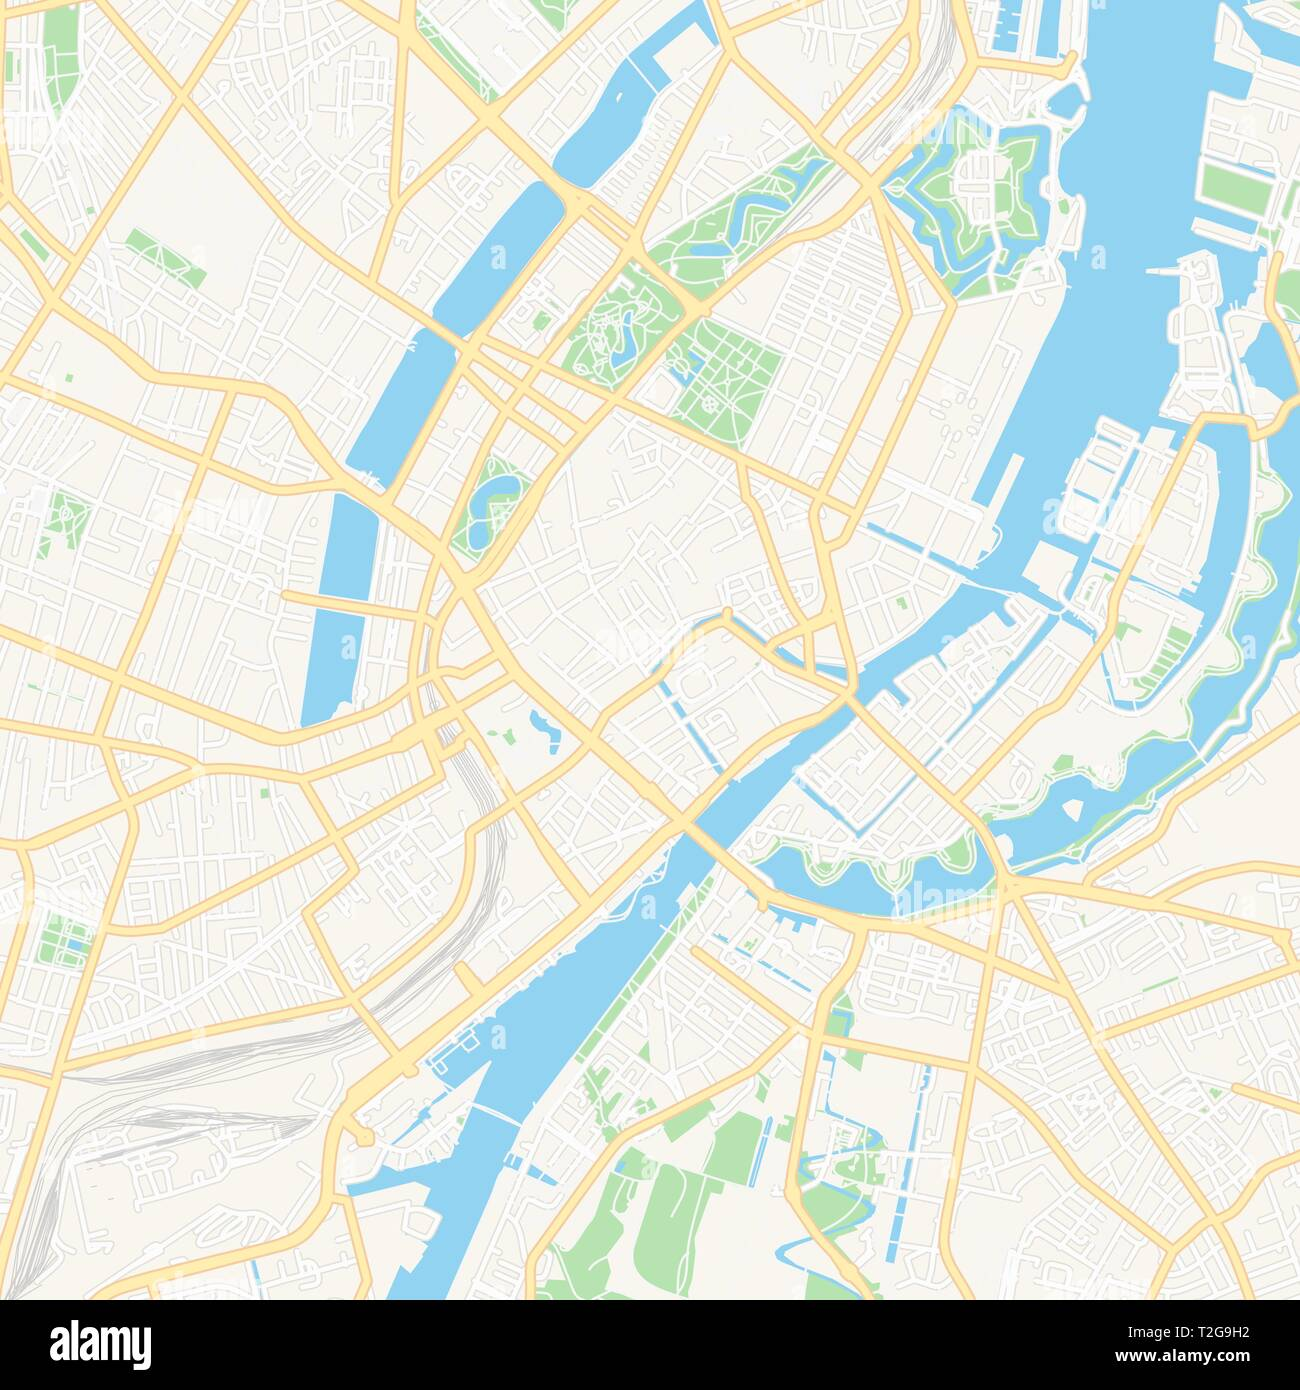 Image of: Printable Map Of Copenhagen Denmark With Main And Secondary Roads And Larger Railways This Map Is Carefully Designed For Routing And Placing Individ Stock Vector Image Art Alamy